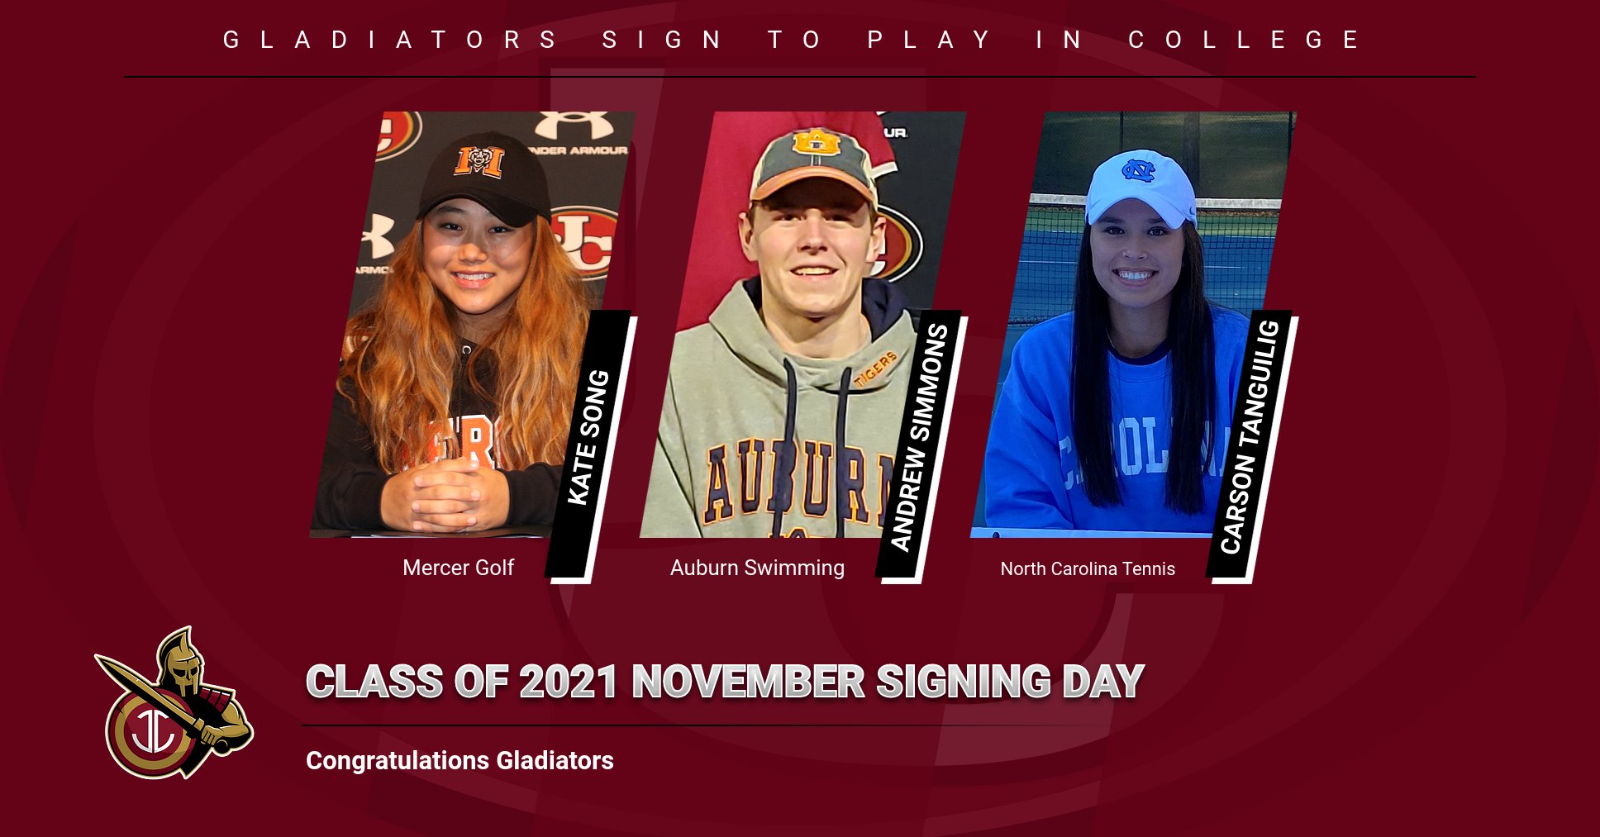 3 Gladiators in Class of 2021 sign to play in college